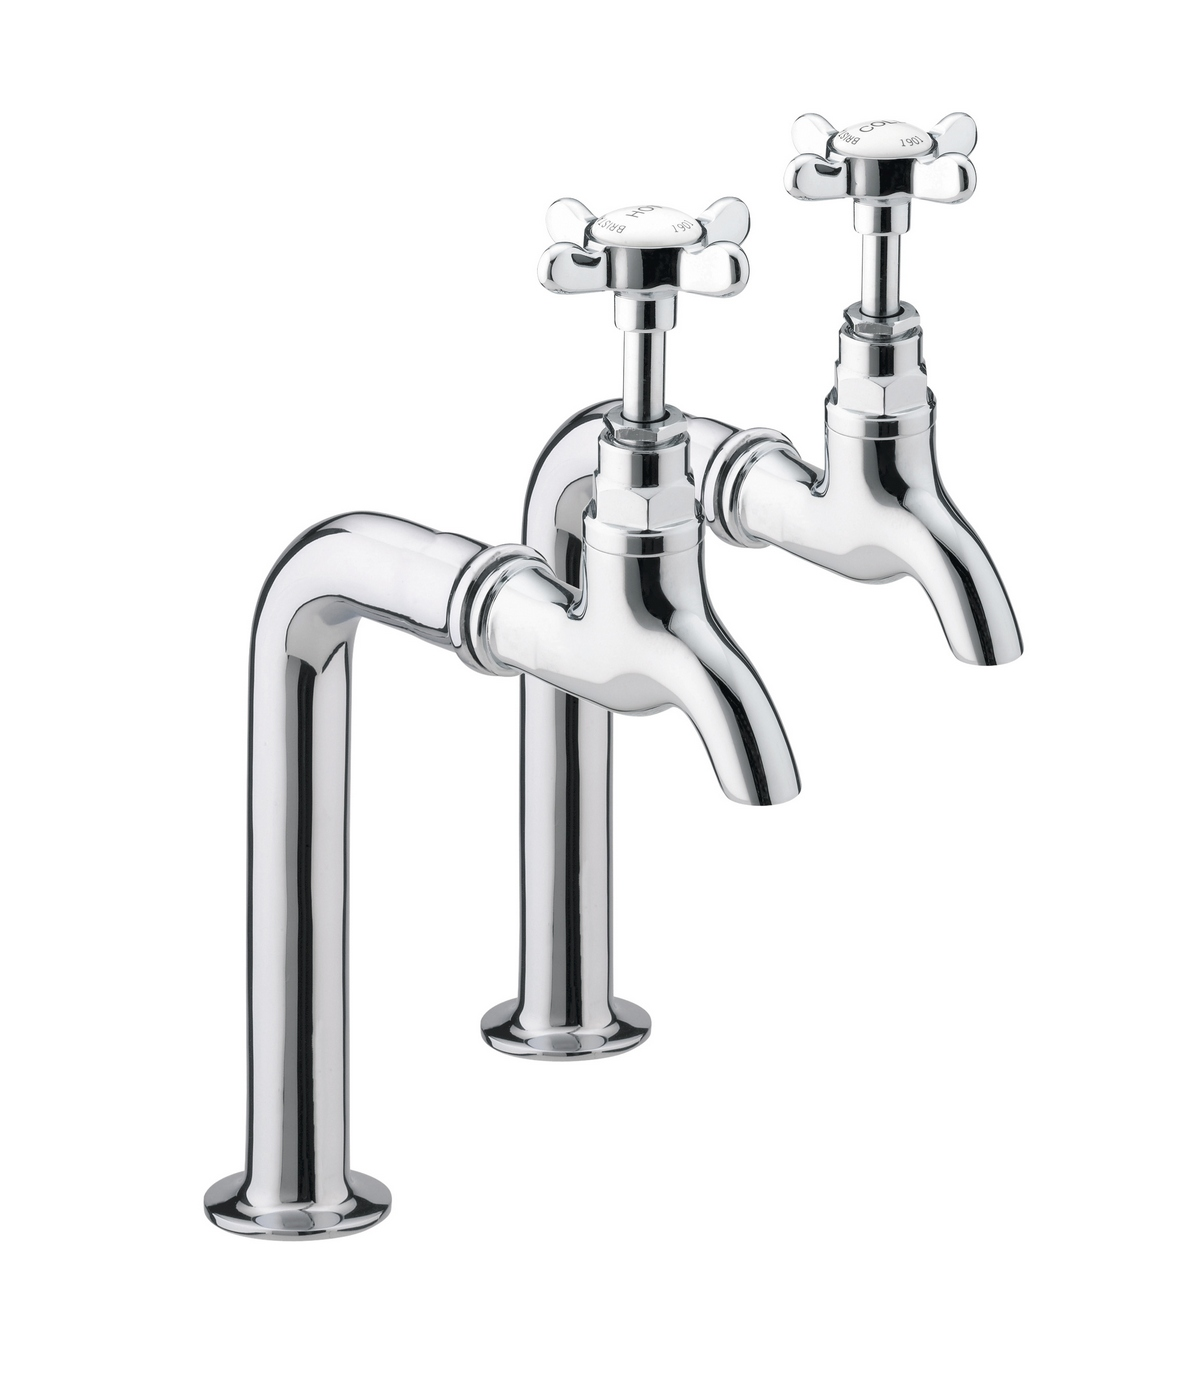 Merrows N Bib C 1901 Bib Taps Chrome Plated